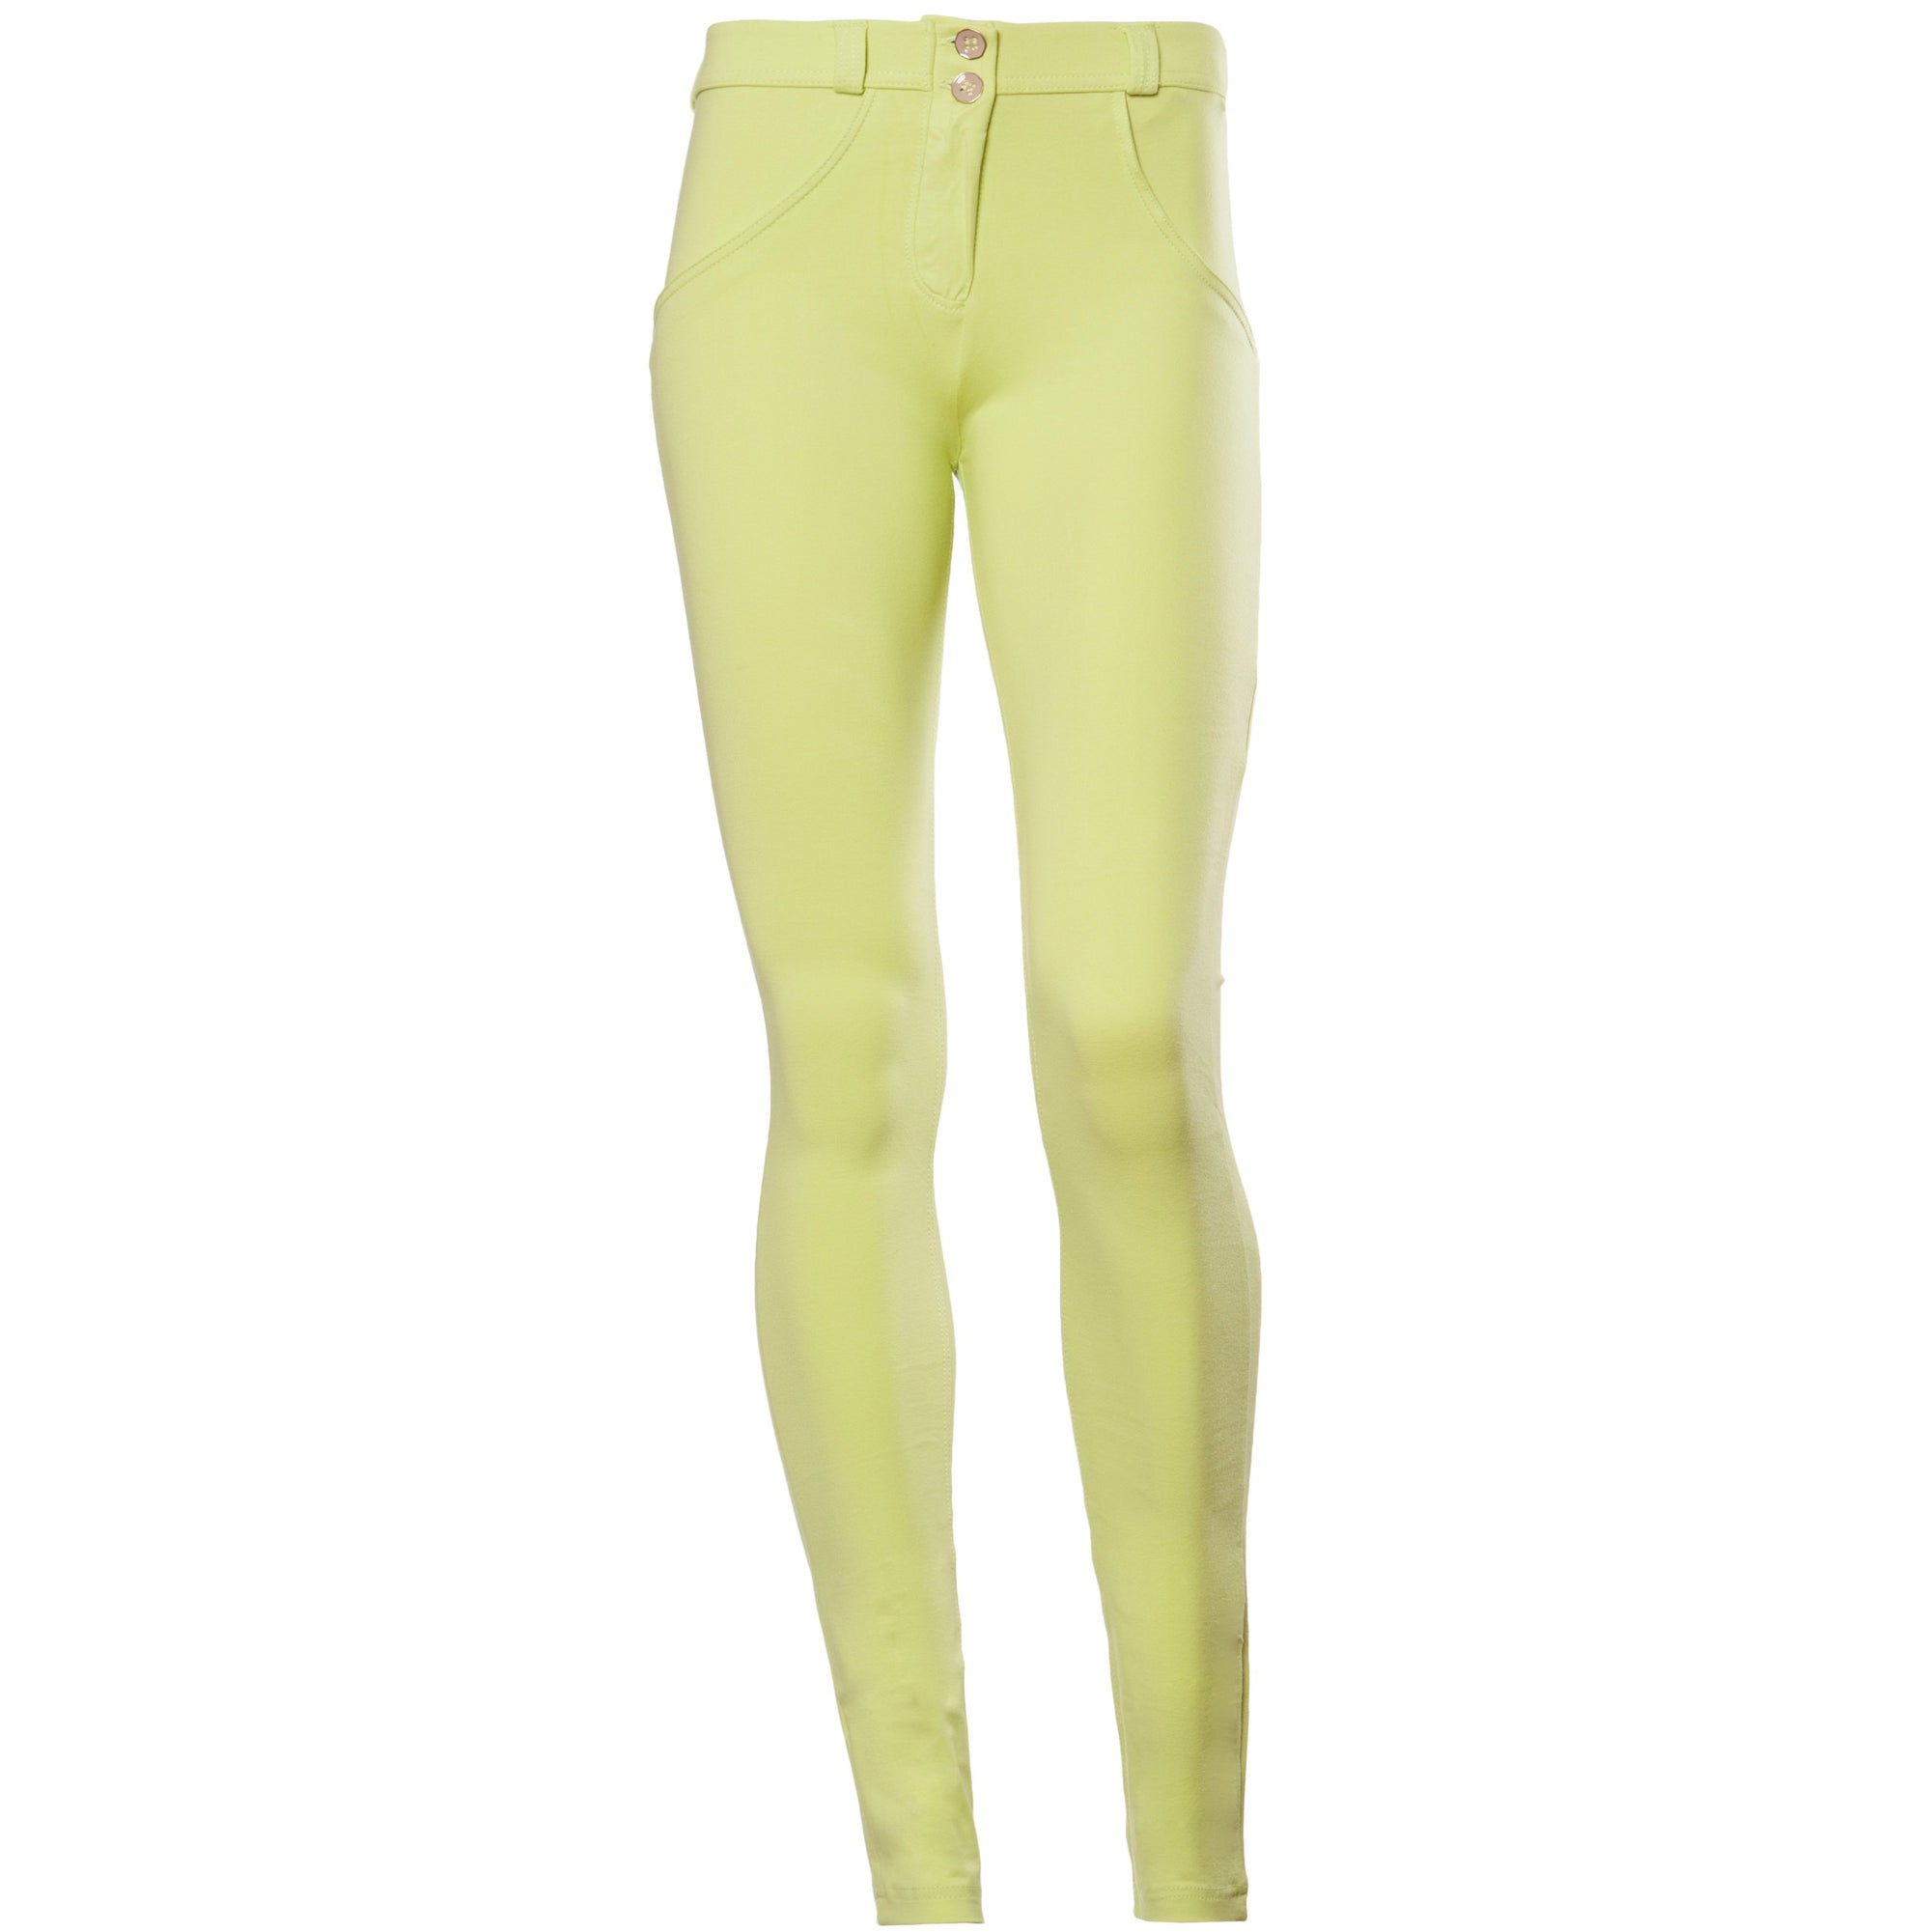 PASTEL YELLOW SKINNY MID-RISE